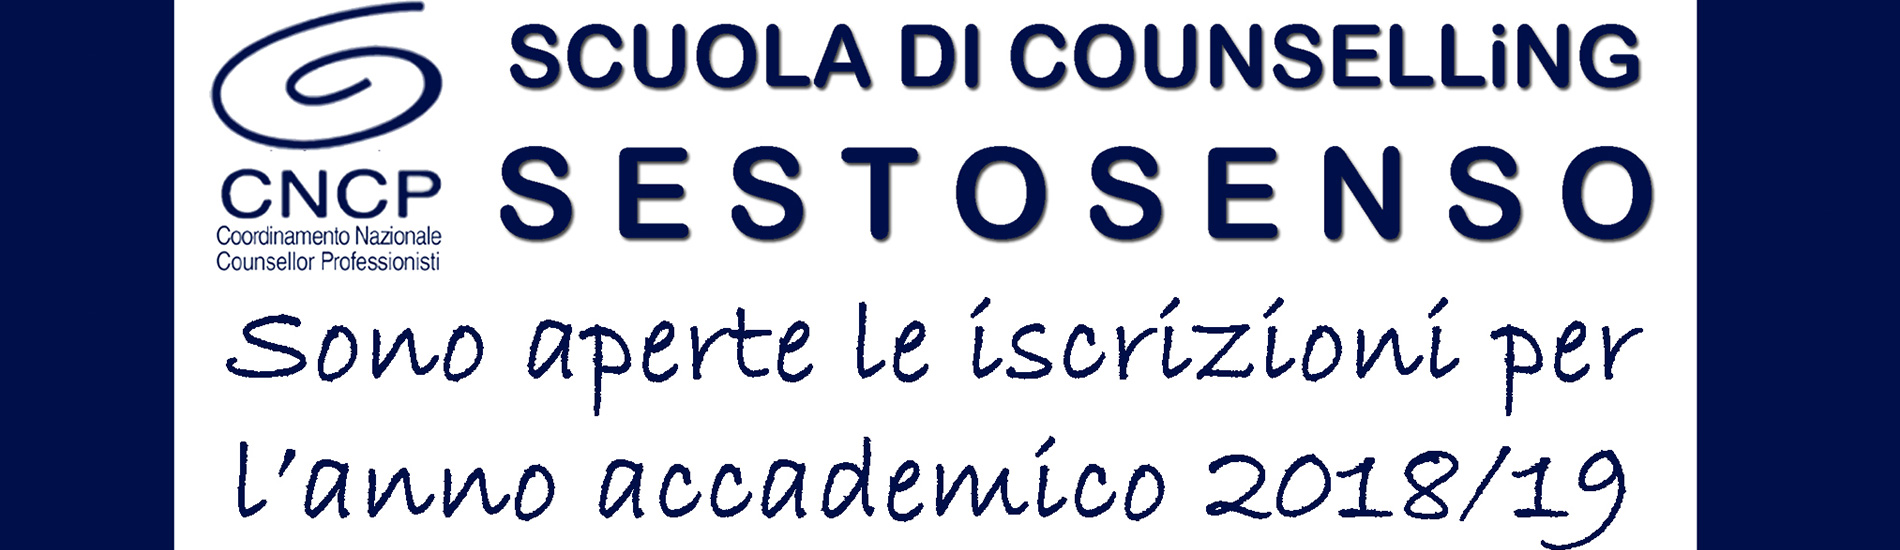 Scuola counselling